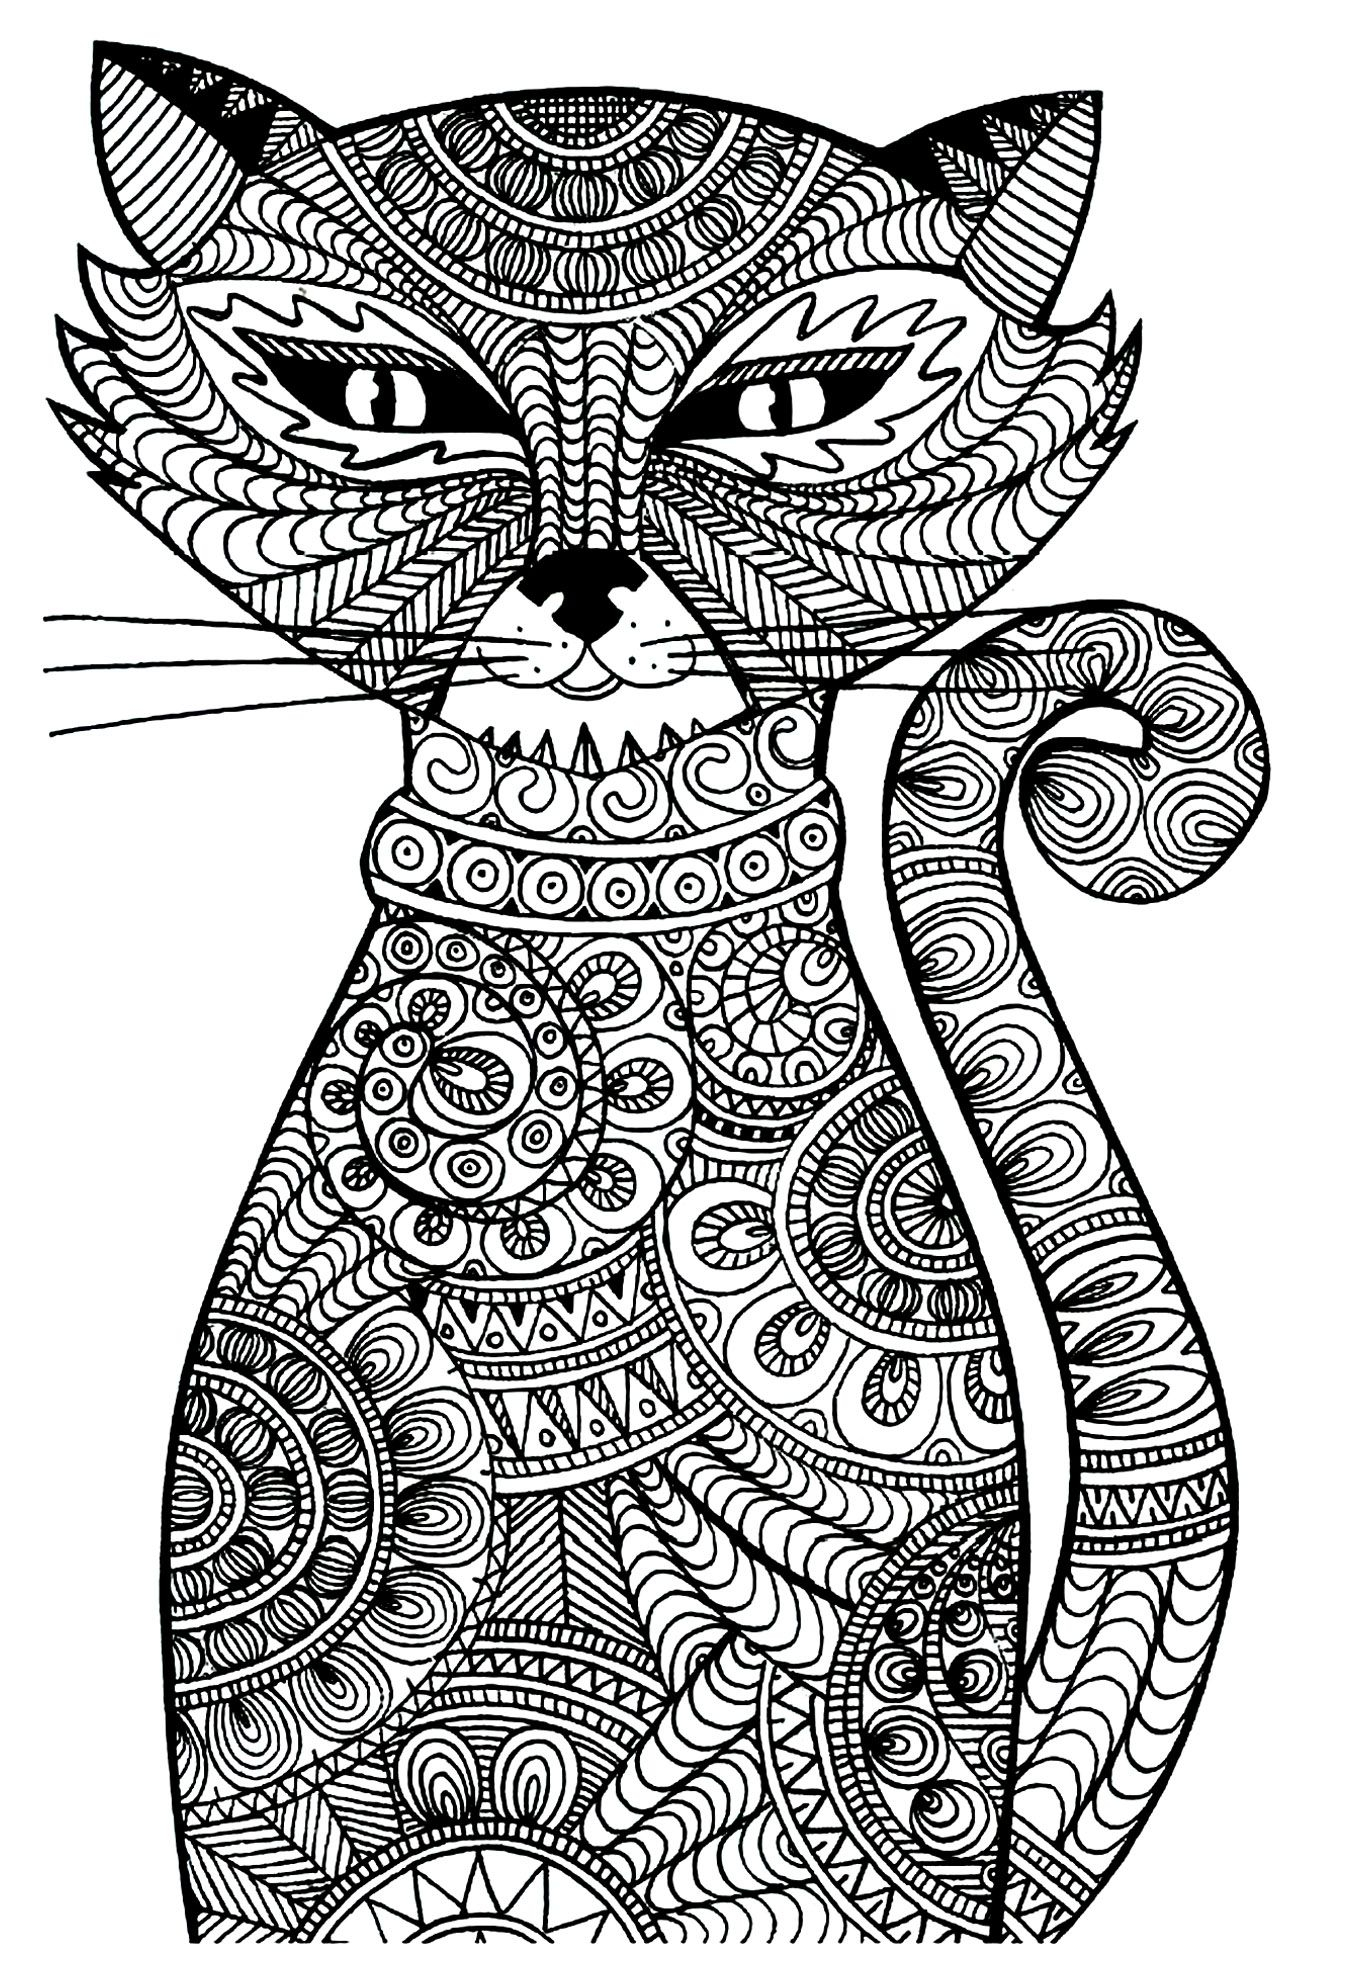 Whisker Haven Coloring Pages  Download 15i - Free For kids